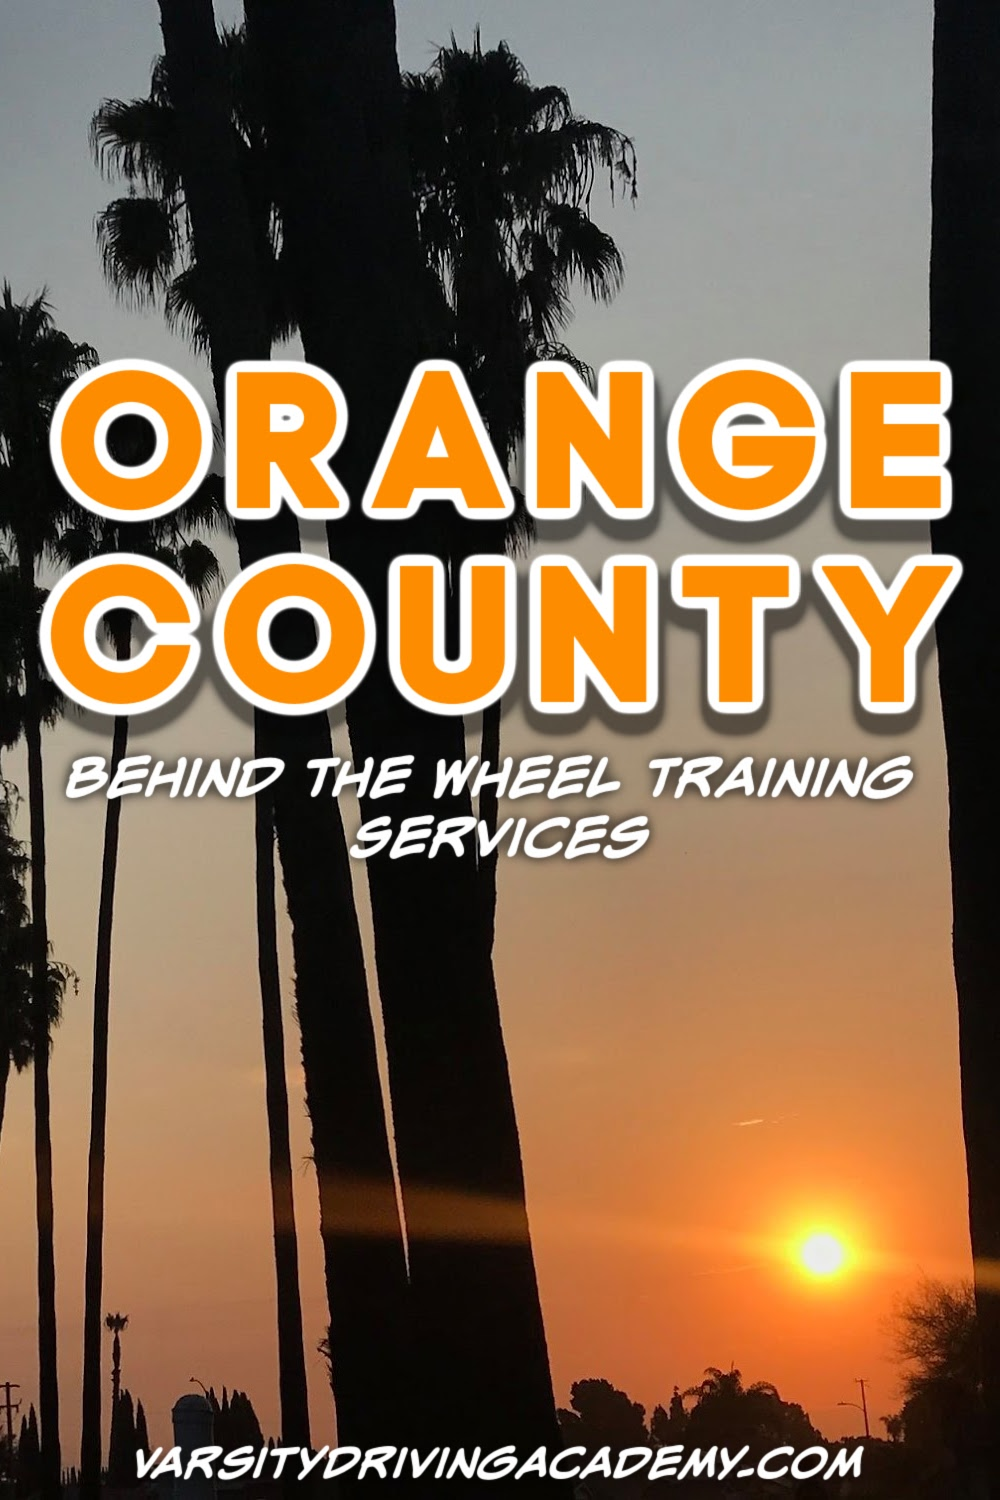 Orange County behind the wheel training should prepare you for safe driving, passing the driving test, and most importantly how to drive defensively.